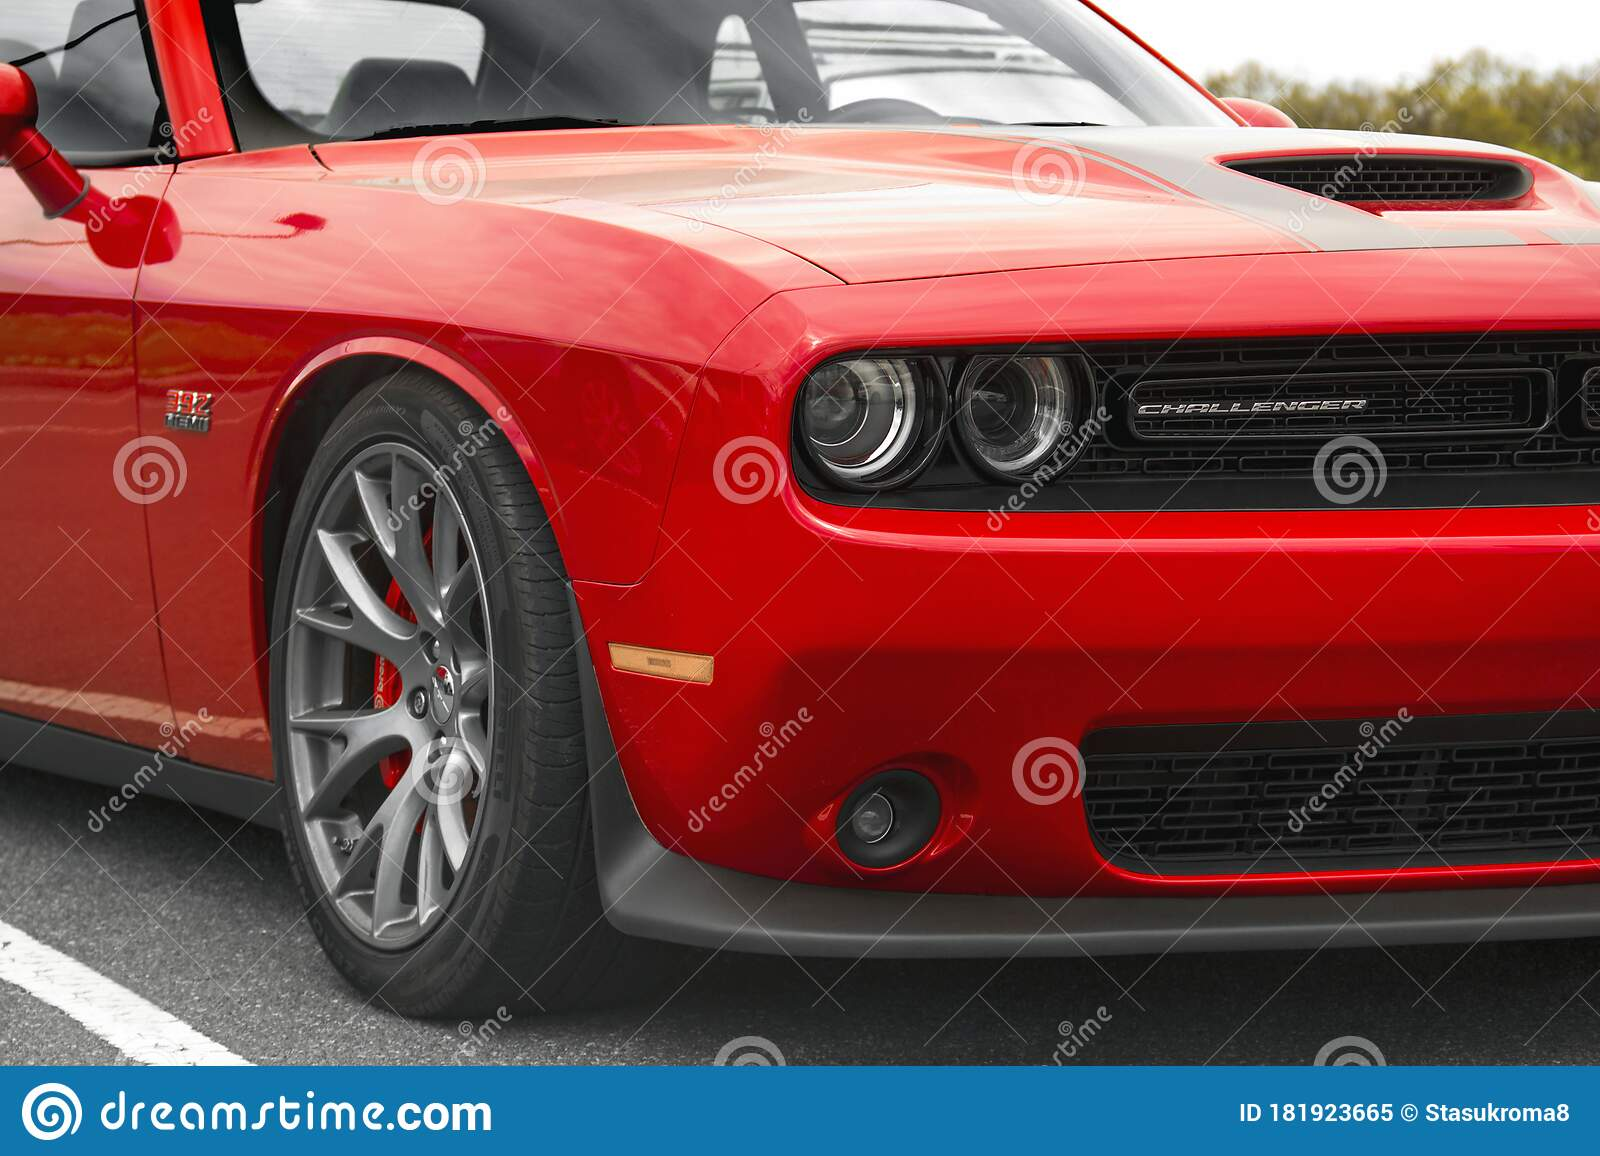 Kiev Ukraine April 21 2020 Muscle Car Dodge Challenger Srt8 392 Hemi Front Of The Car Close Up Red Car Editorial Image Image Of Headlight Exhaust 181923665